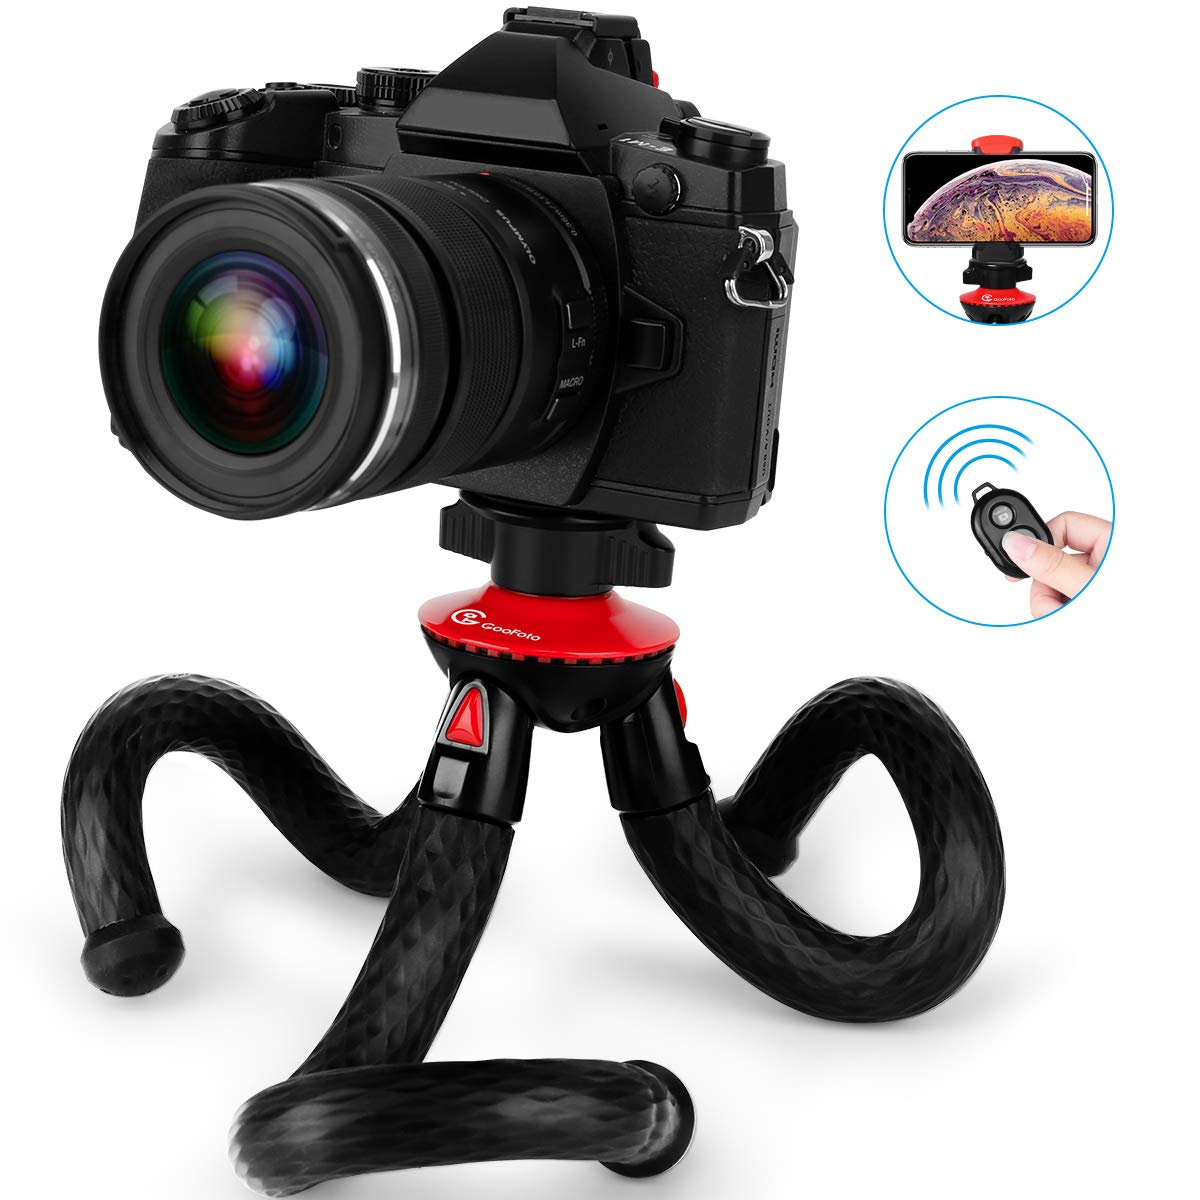 Phone Tripod, Goofoto Flexible Tripod, Tripod for iPhone Android Phone with Wireless Remote and Phone Clip, Camera Tripod for Mirrorless DSLR Sony Nikon Canon by Goofoto